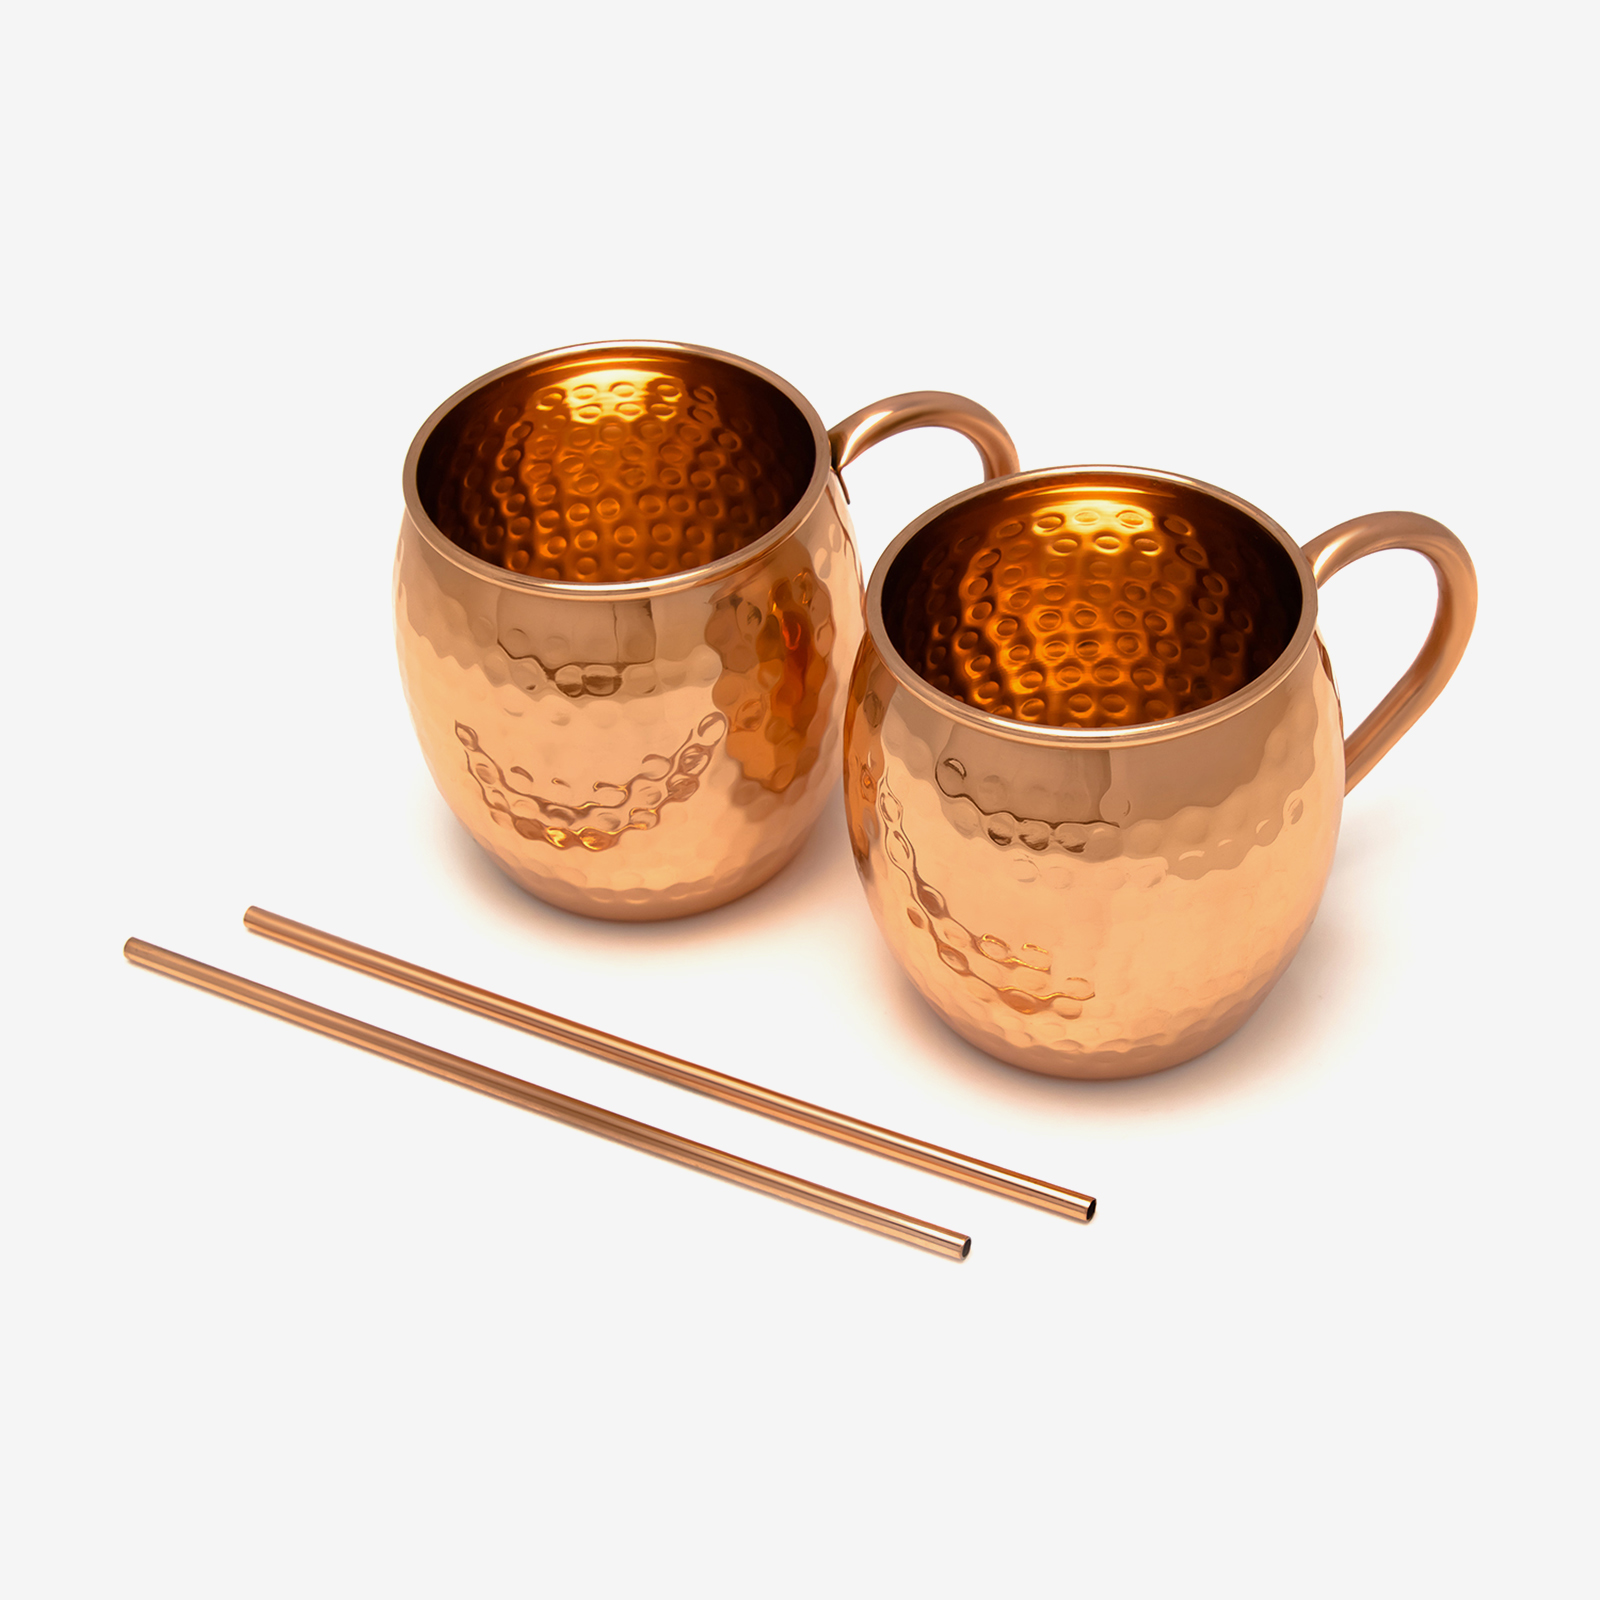 gold objects product photo, cup product photo, mug product photo